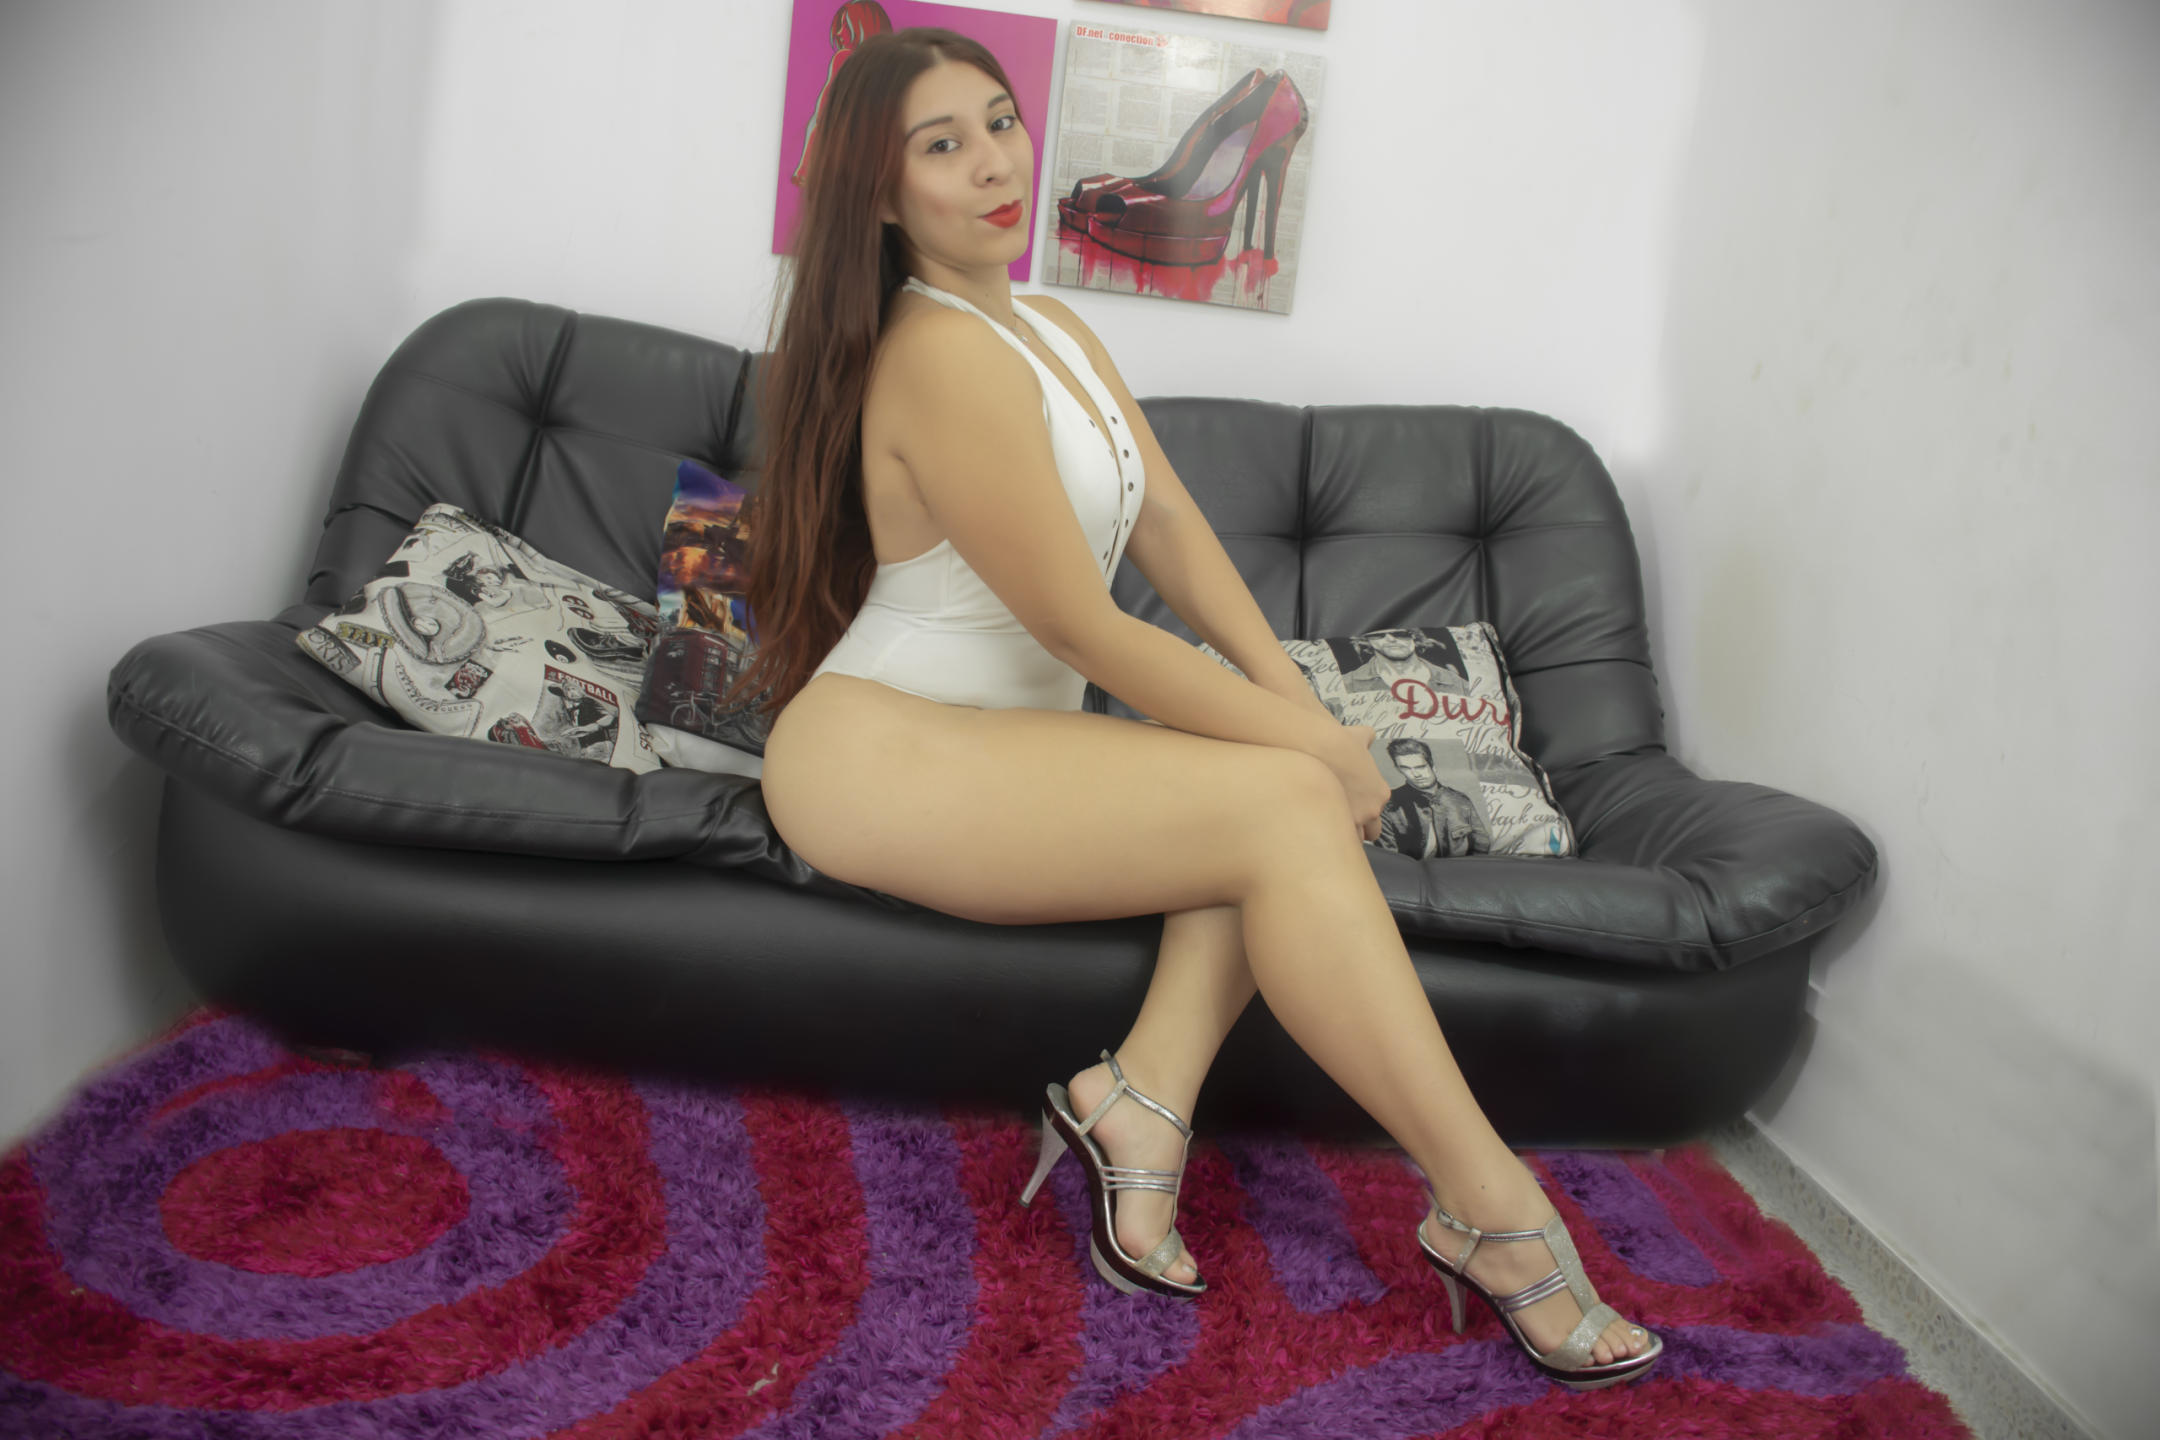 Anahi Sex anahiii : recent comments for hard show